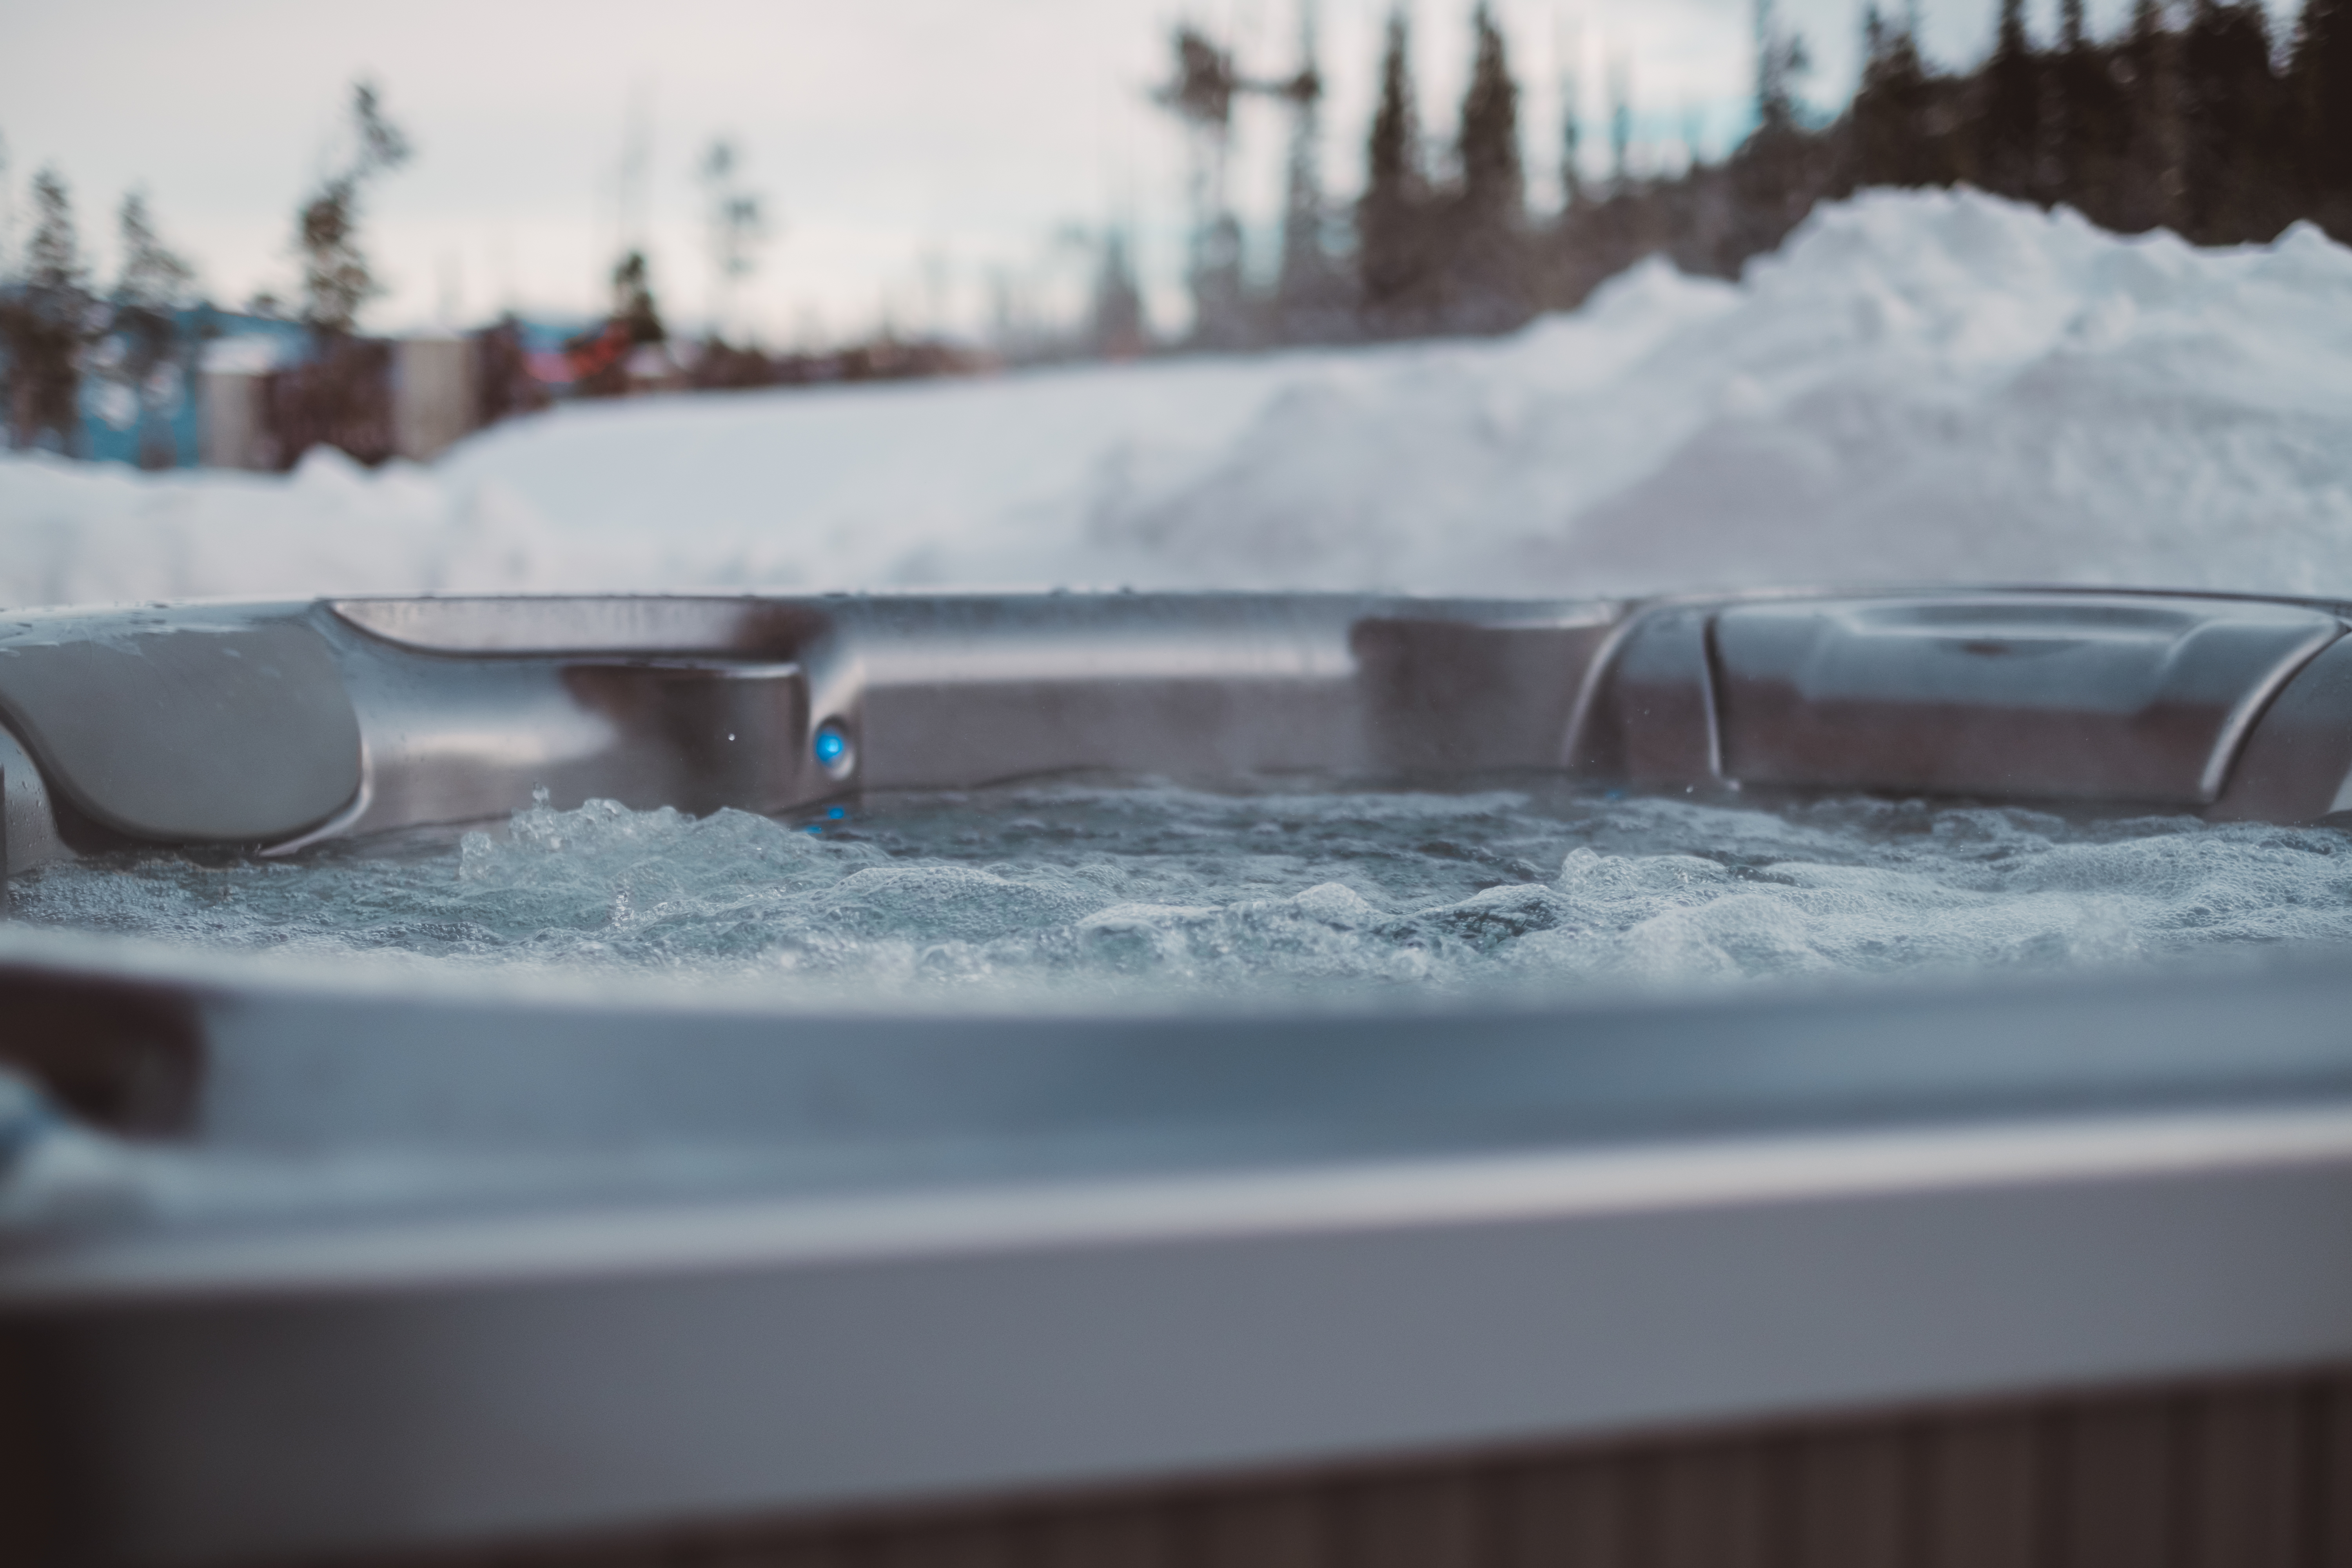 The 9 Worst Mistakes Hot Tub Owners Make